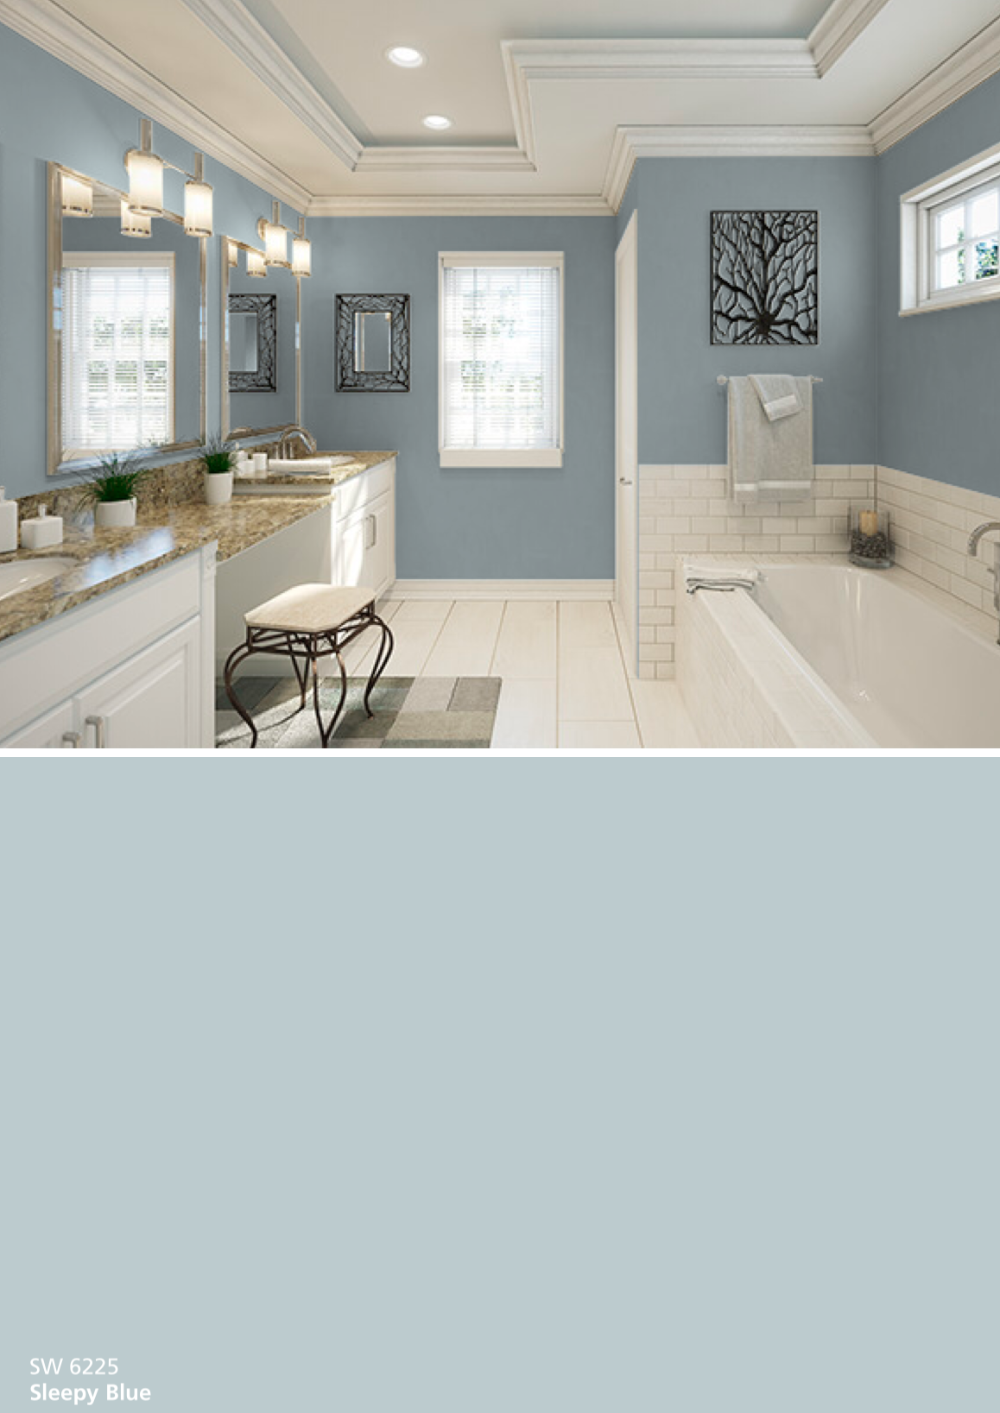 Sherwin Williams 2020 Paint Color In 2020 Best Bathroom Paint Colors Bathroom Paint Colors Bathroom Paint Colors Sherwin Williams